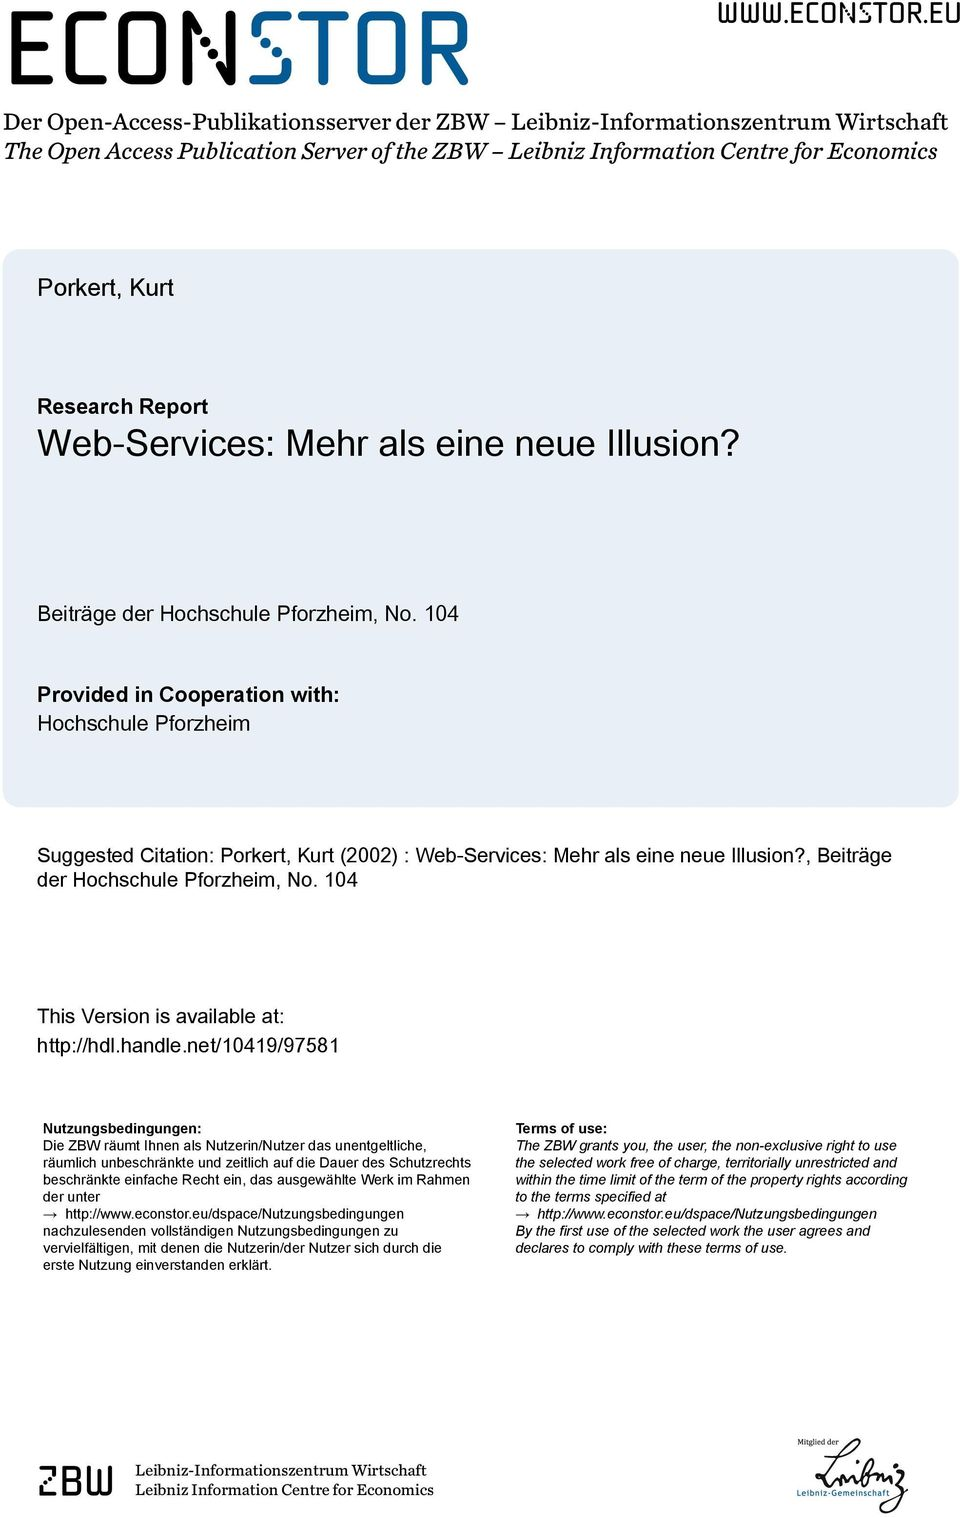 eu Der Open-Access-Publikationsserver der ZBW Leibniz-Informationszentrum Wirtschaft The Open Access Publication Server of the ZBW Leibniz Information Centre for Economics Porkert, Kurt Research